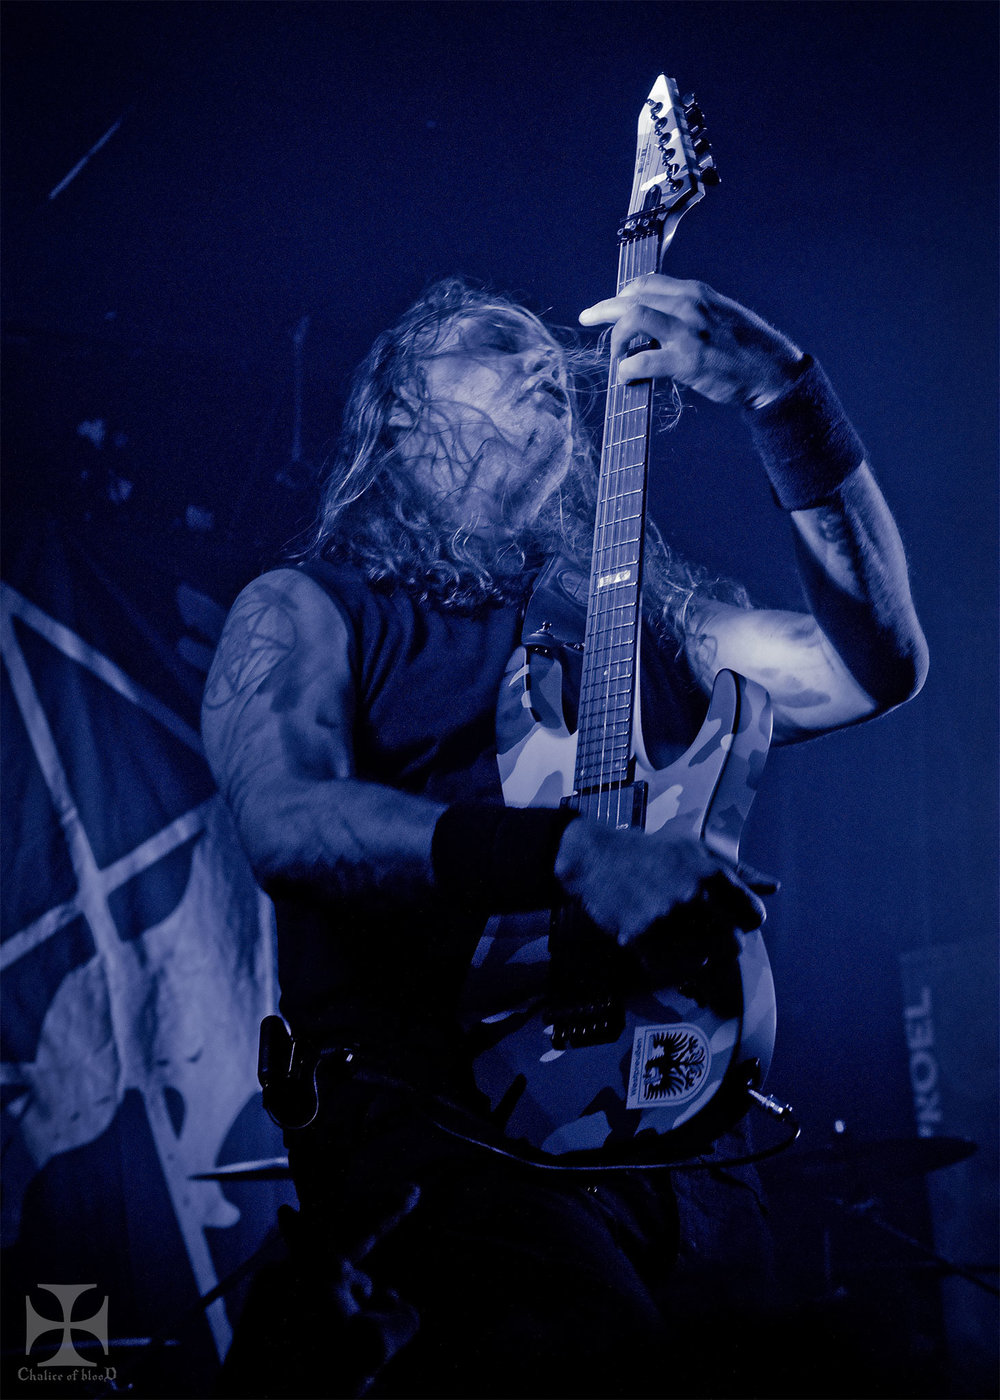 Marduk---77-watermarked.jpg